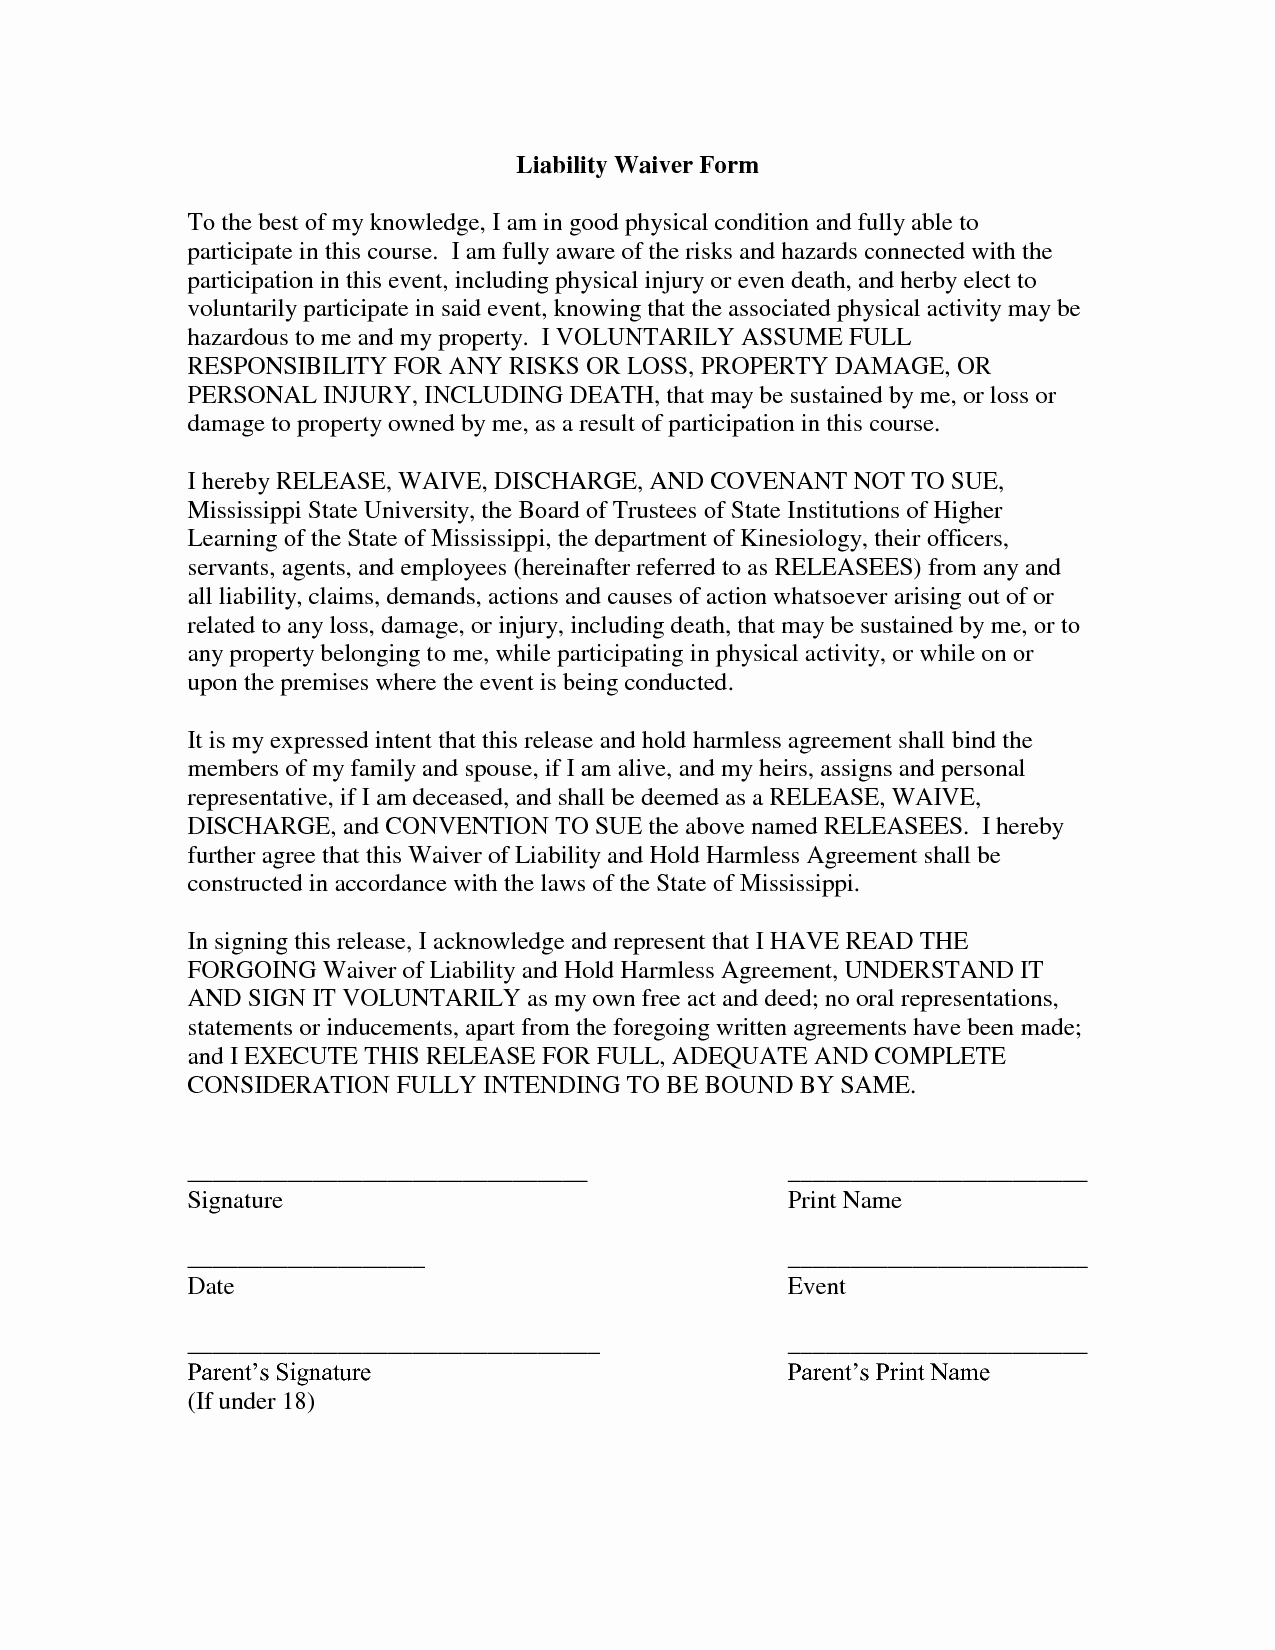 Free Liability Waiver Template Awesome Free Printable Liability form form Generic